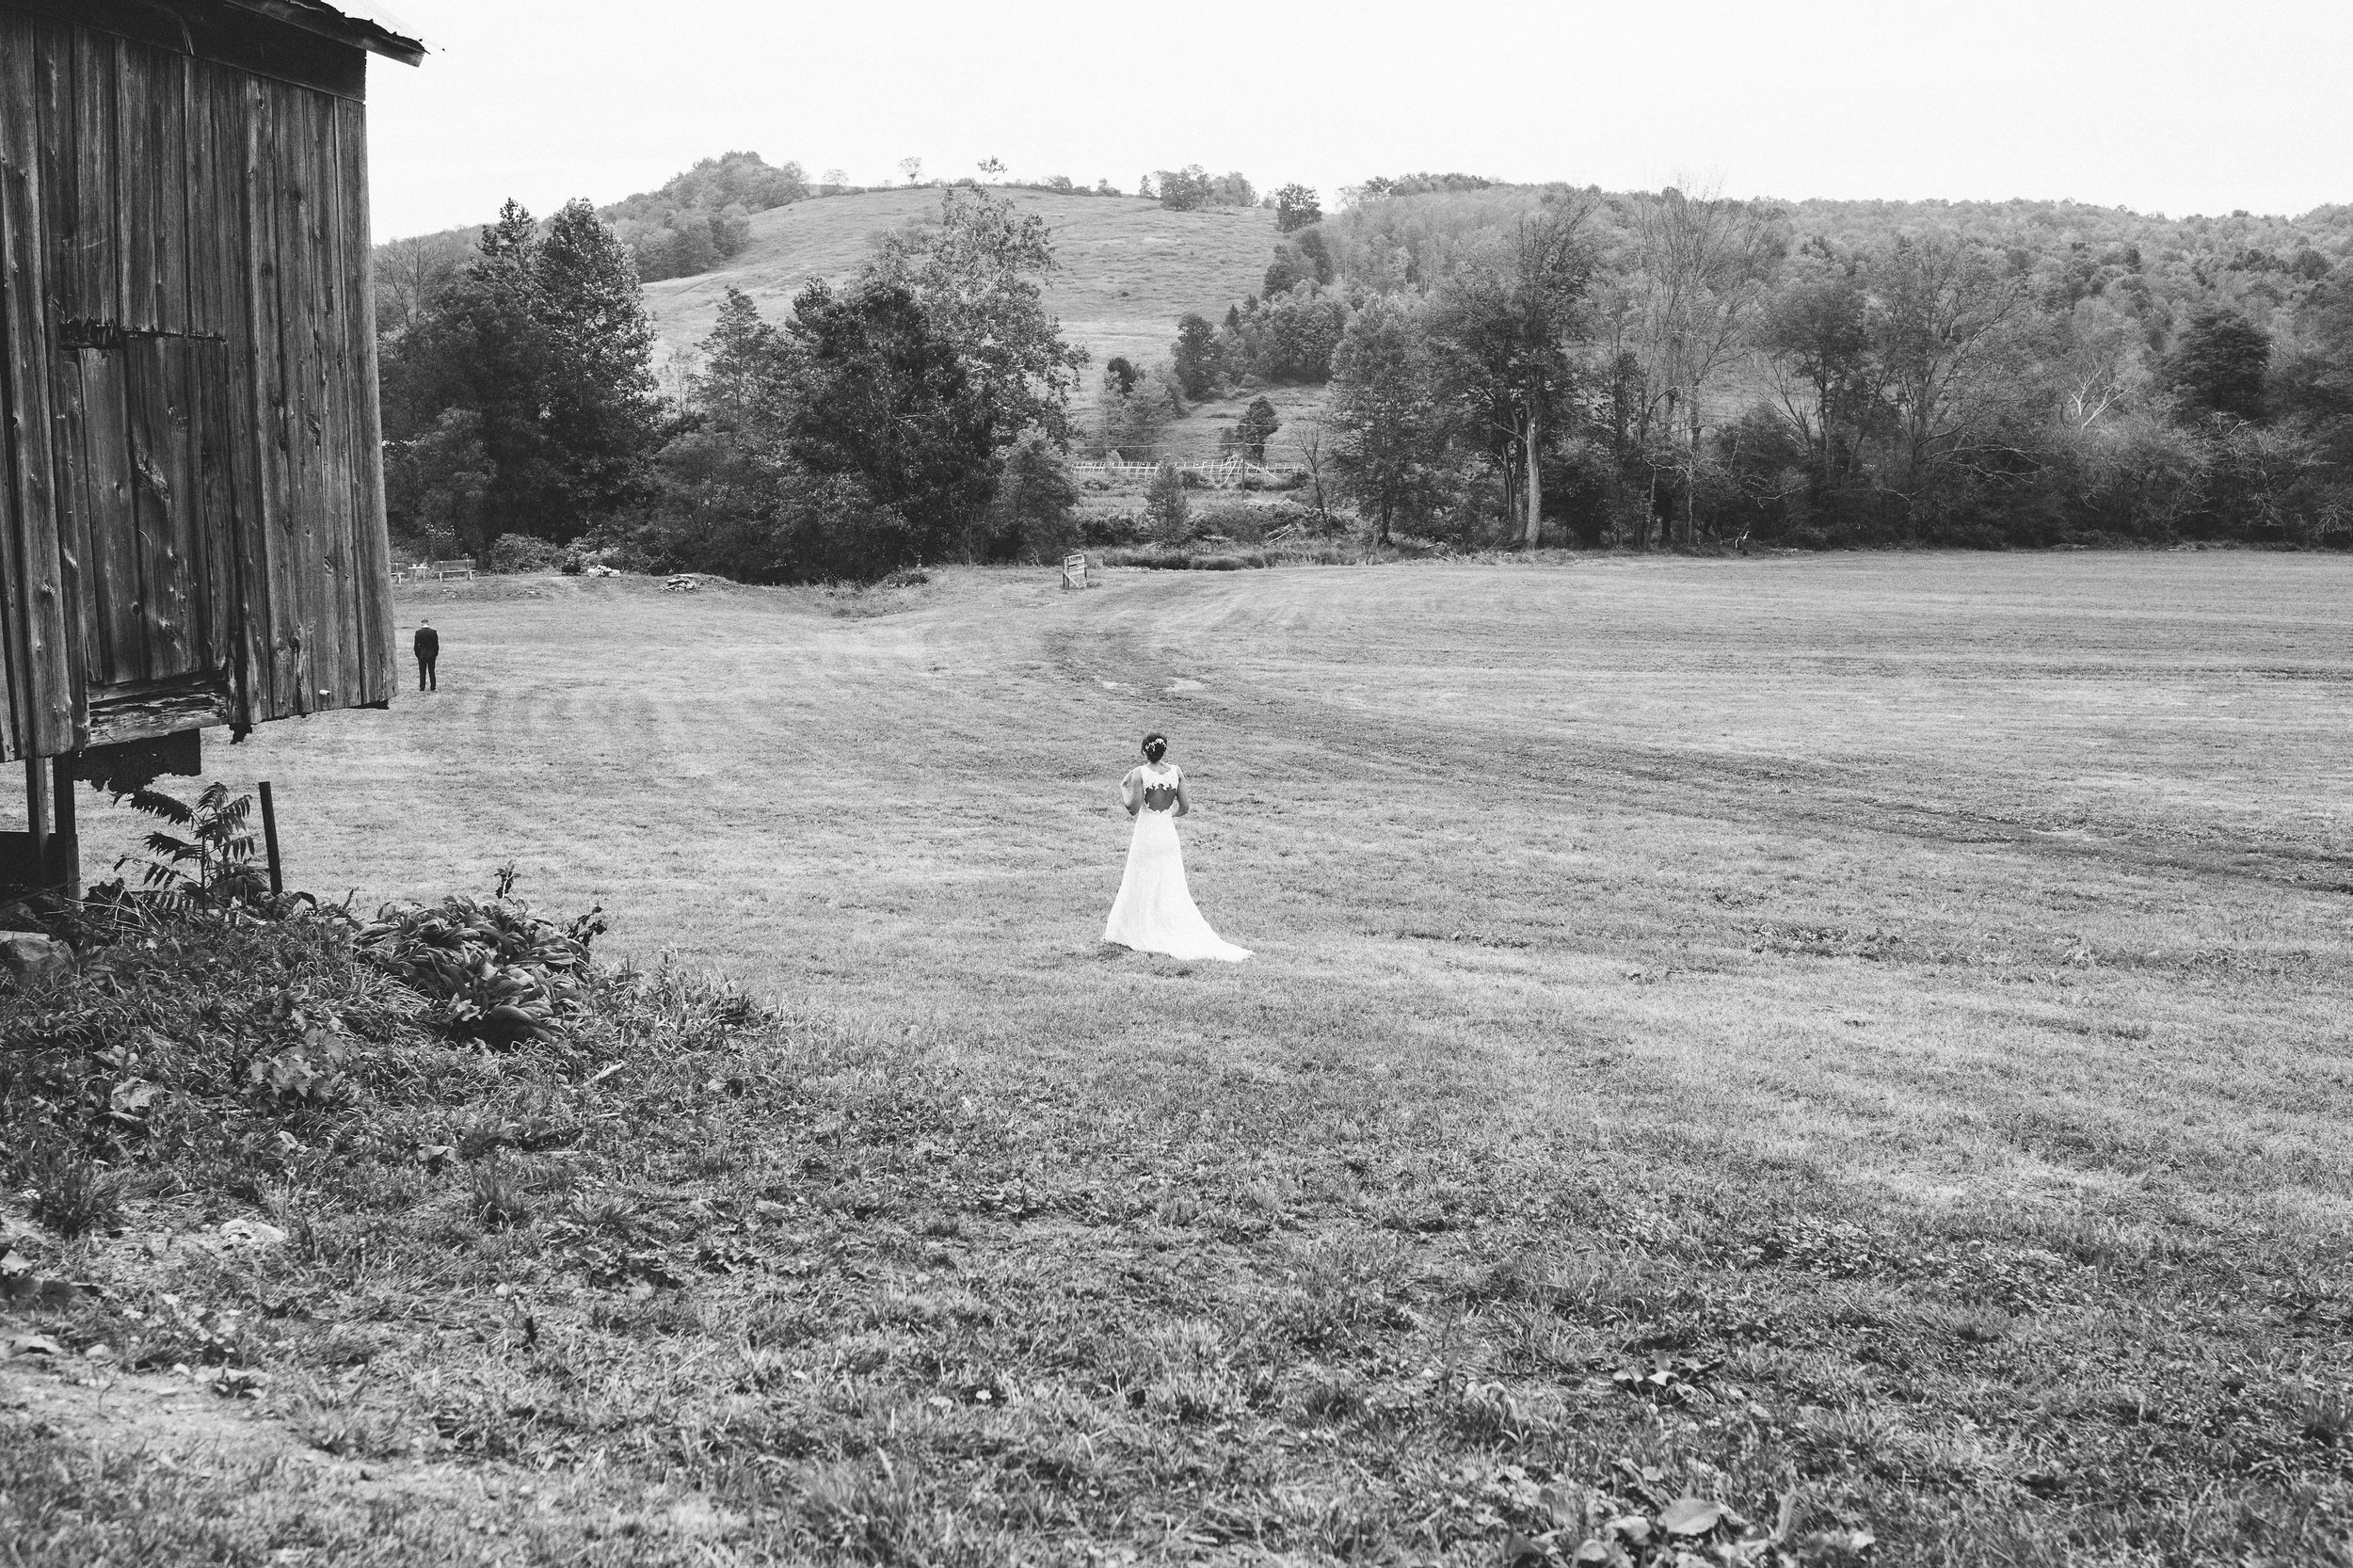 brittany-eric-upstate-diy-farm-wedding-couple-of-dudes-lawrence-braun-Hi-Res-0041.jpg